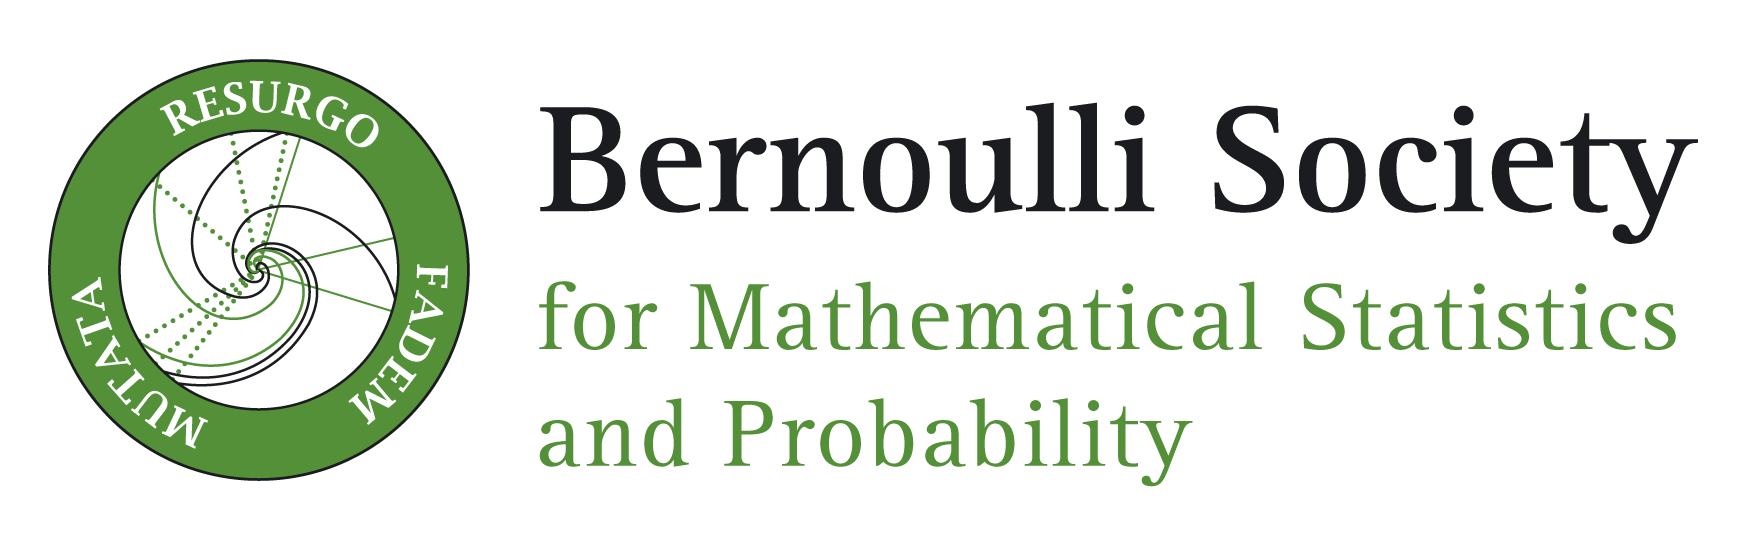 Logo of the Bernoulli Society